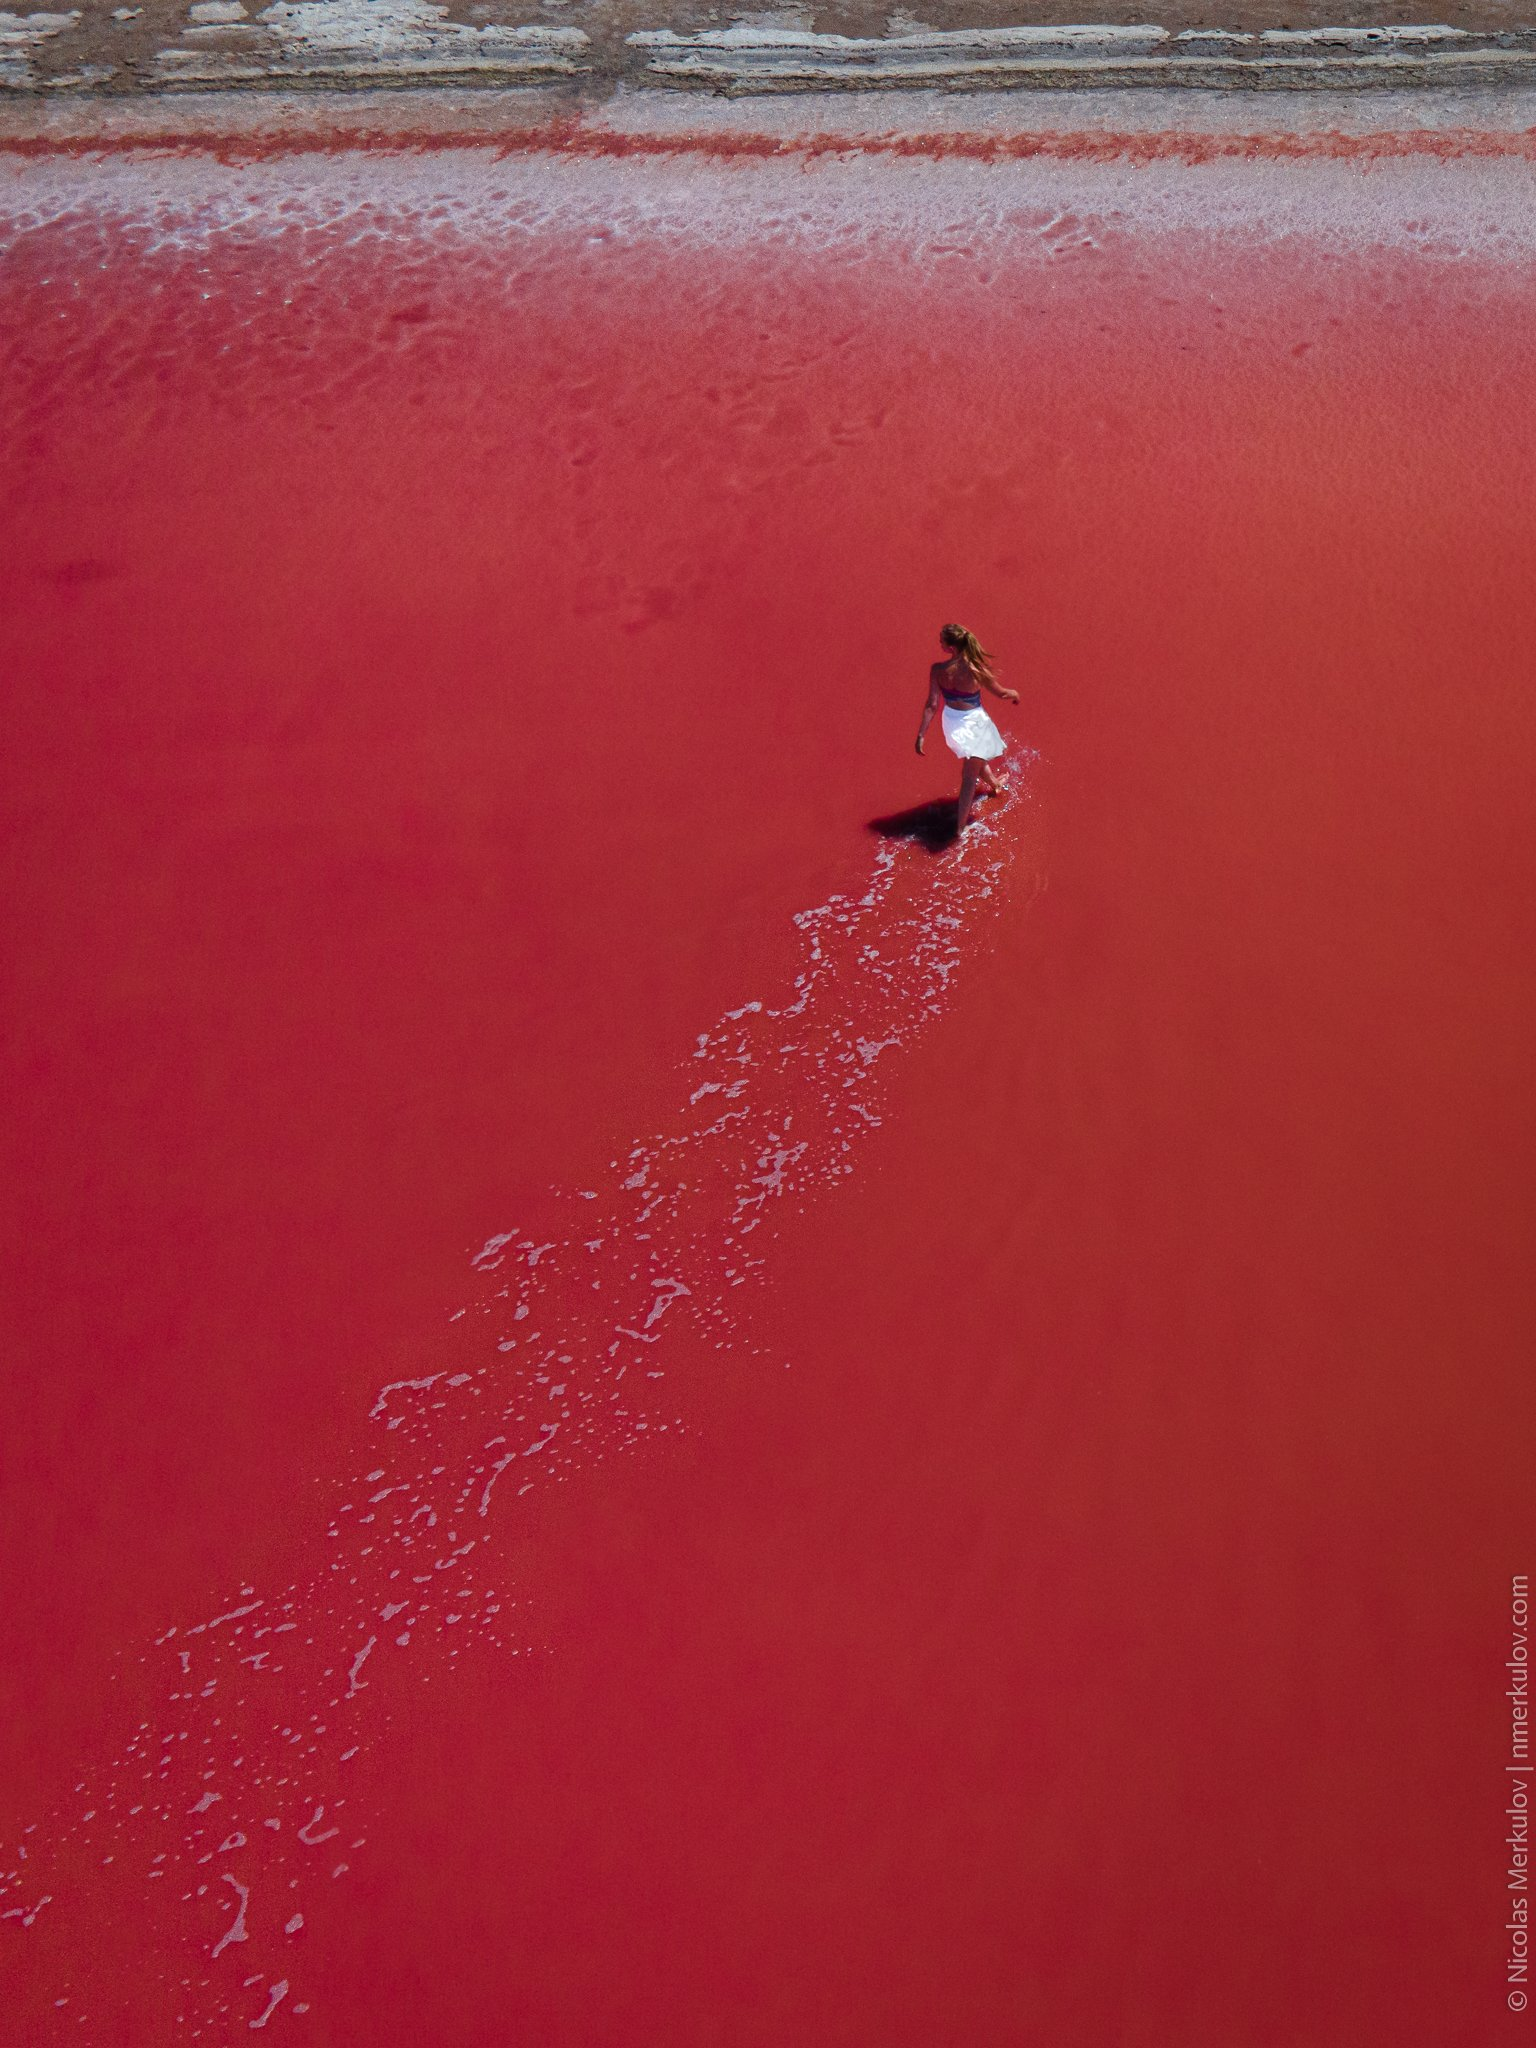 lake, red, red lake, dunaliella salina, landscape, people, woman, sunset, drone, drone photography, nmerkulov, nmerkulovphotography, Николай Меркулов